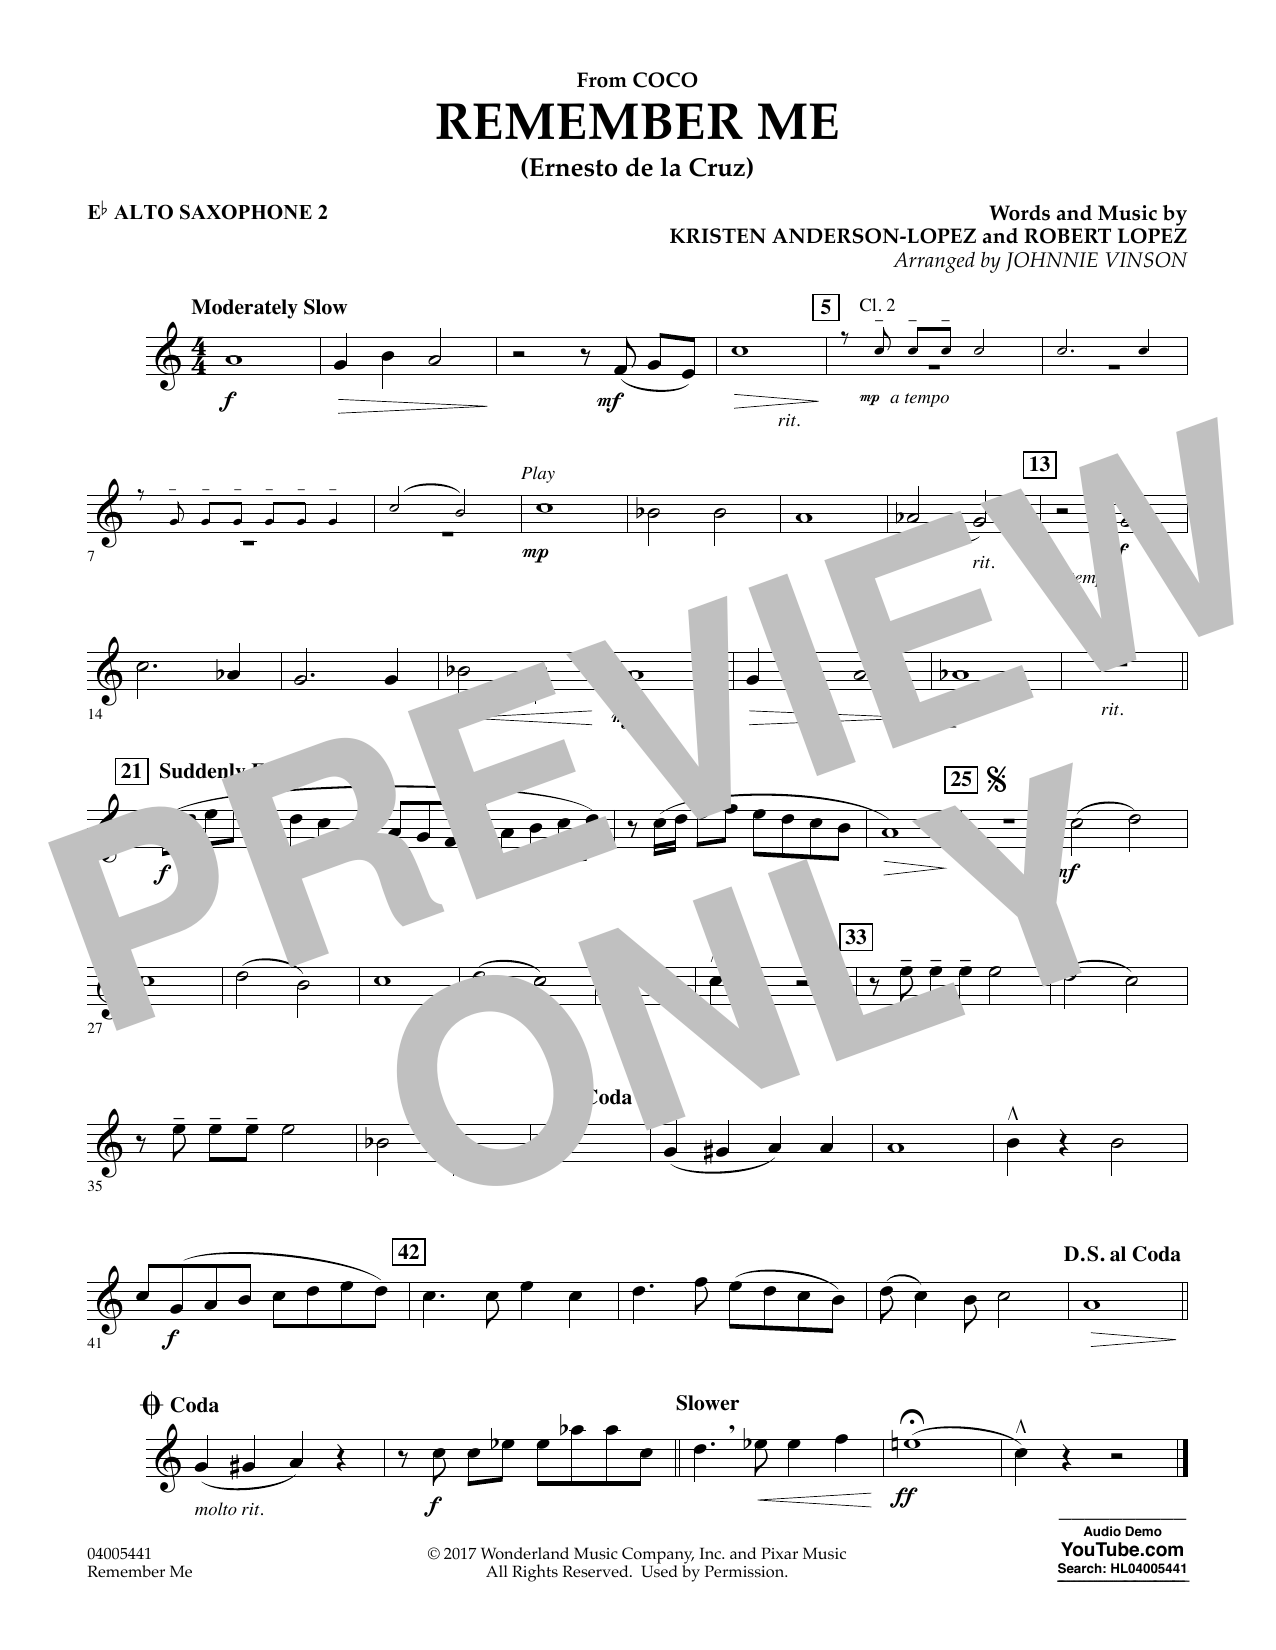 Kristen Anderson-Lopez & Robert Lopez Remember Me (from Coco) (arr. Johnnie Vinson) - Eb Alto Saxophone 2 sheet music preview music notes and score for Concert Band including 1 page(s)